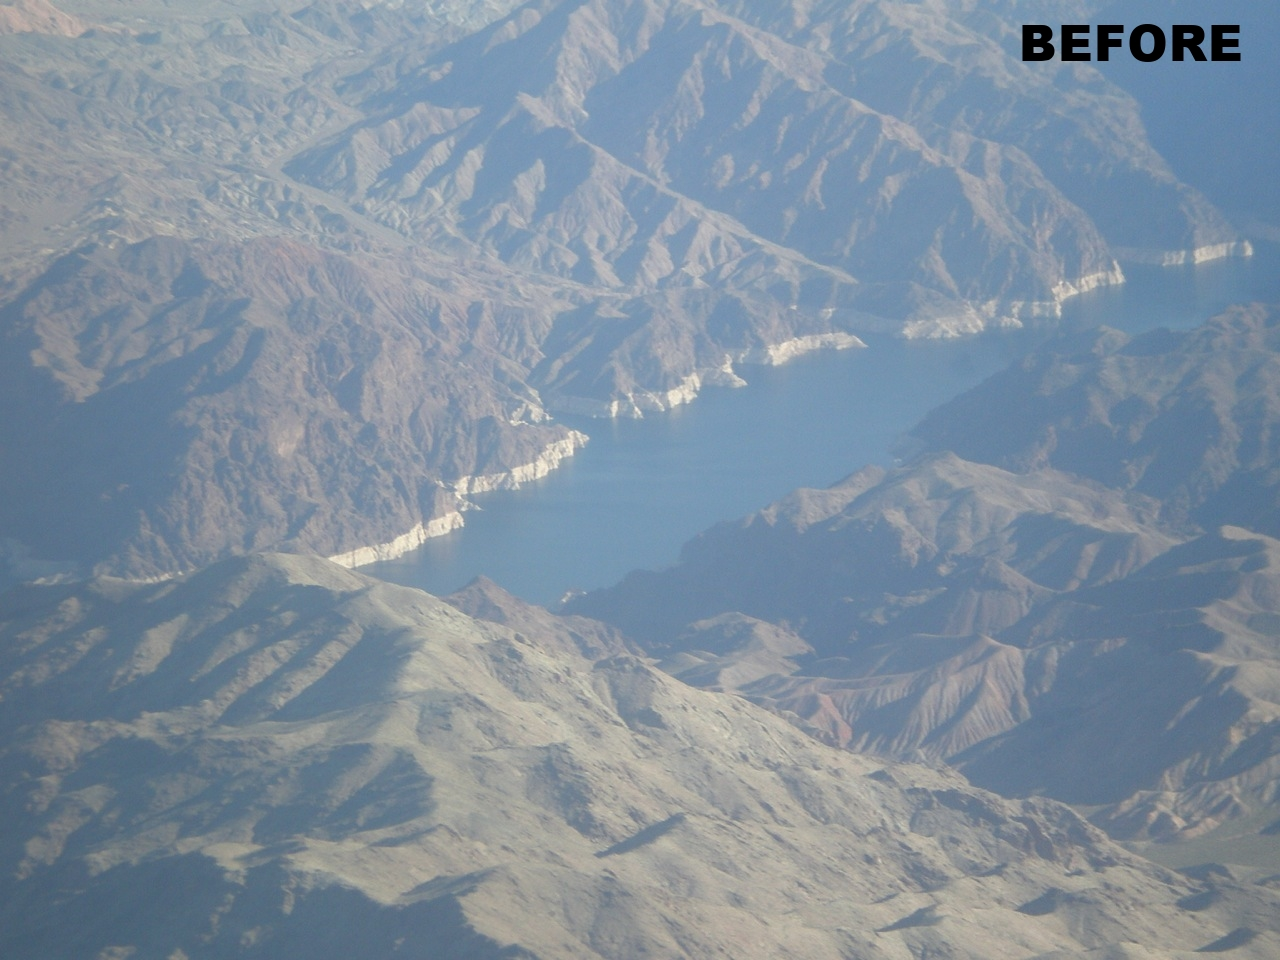 Mountain River - Before